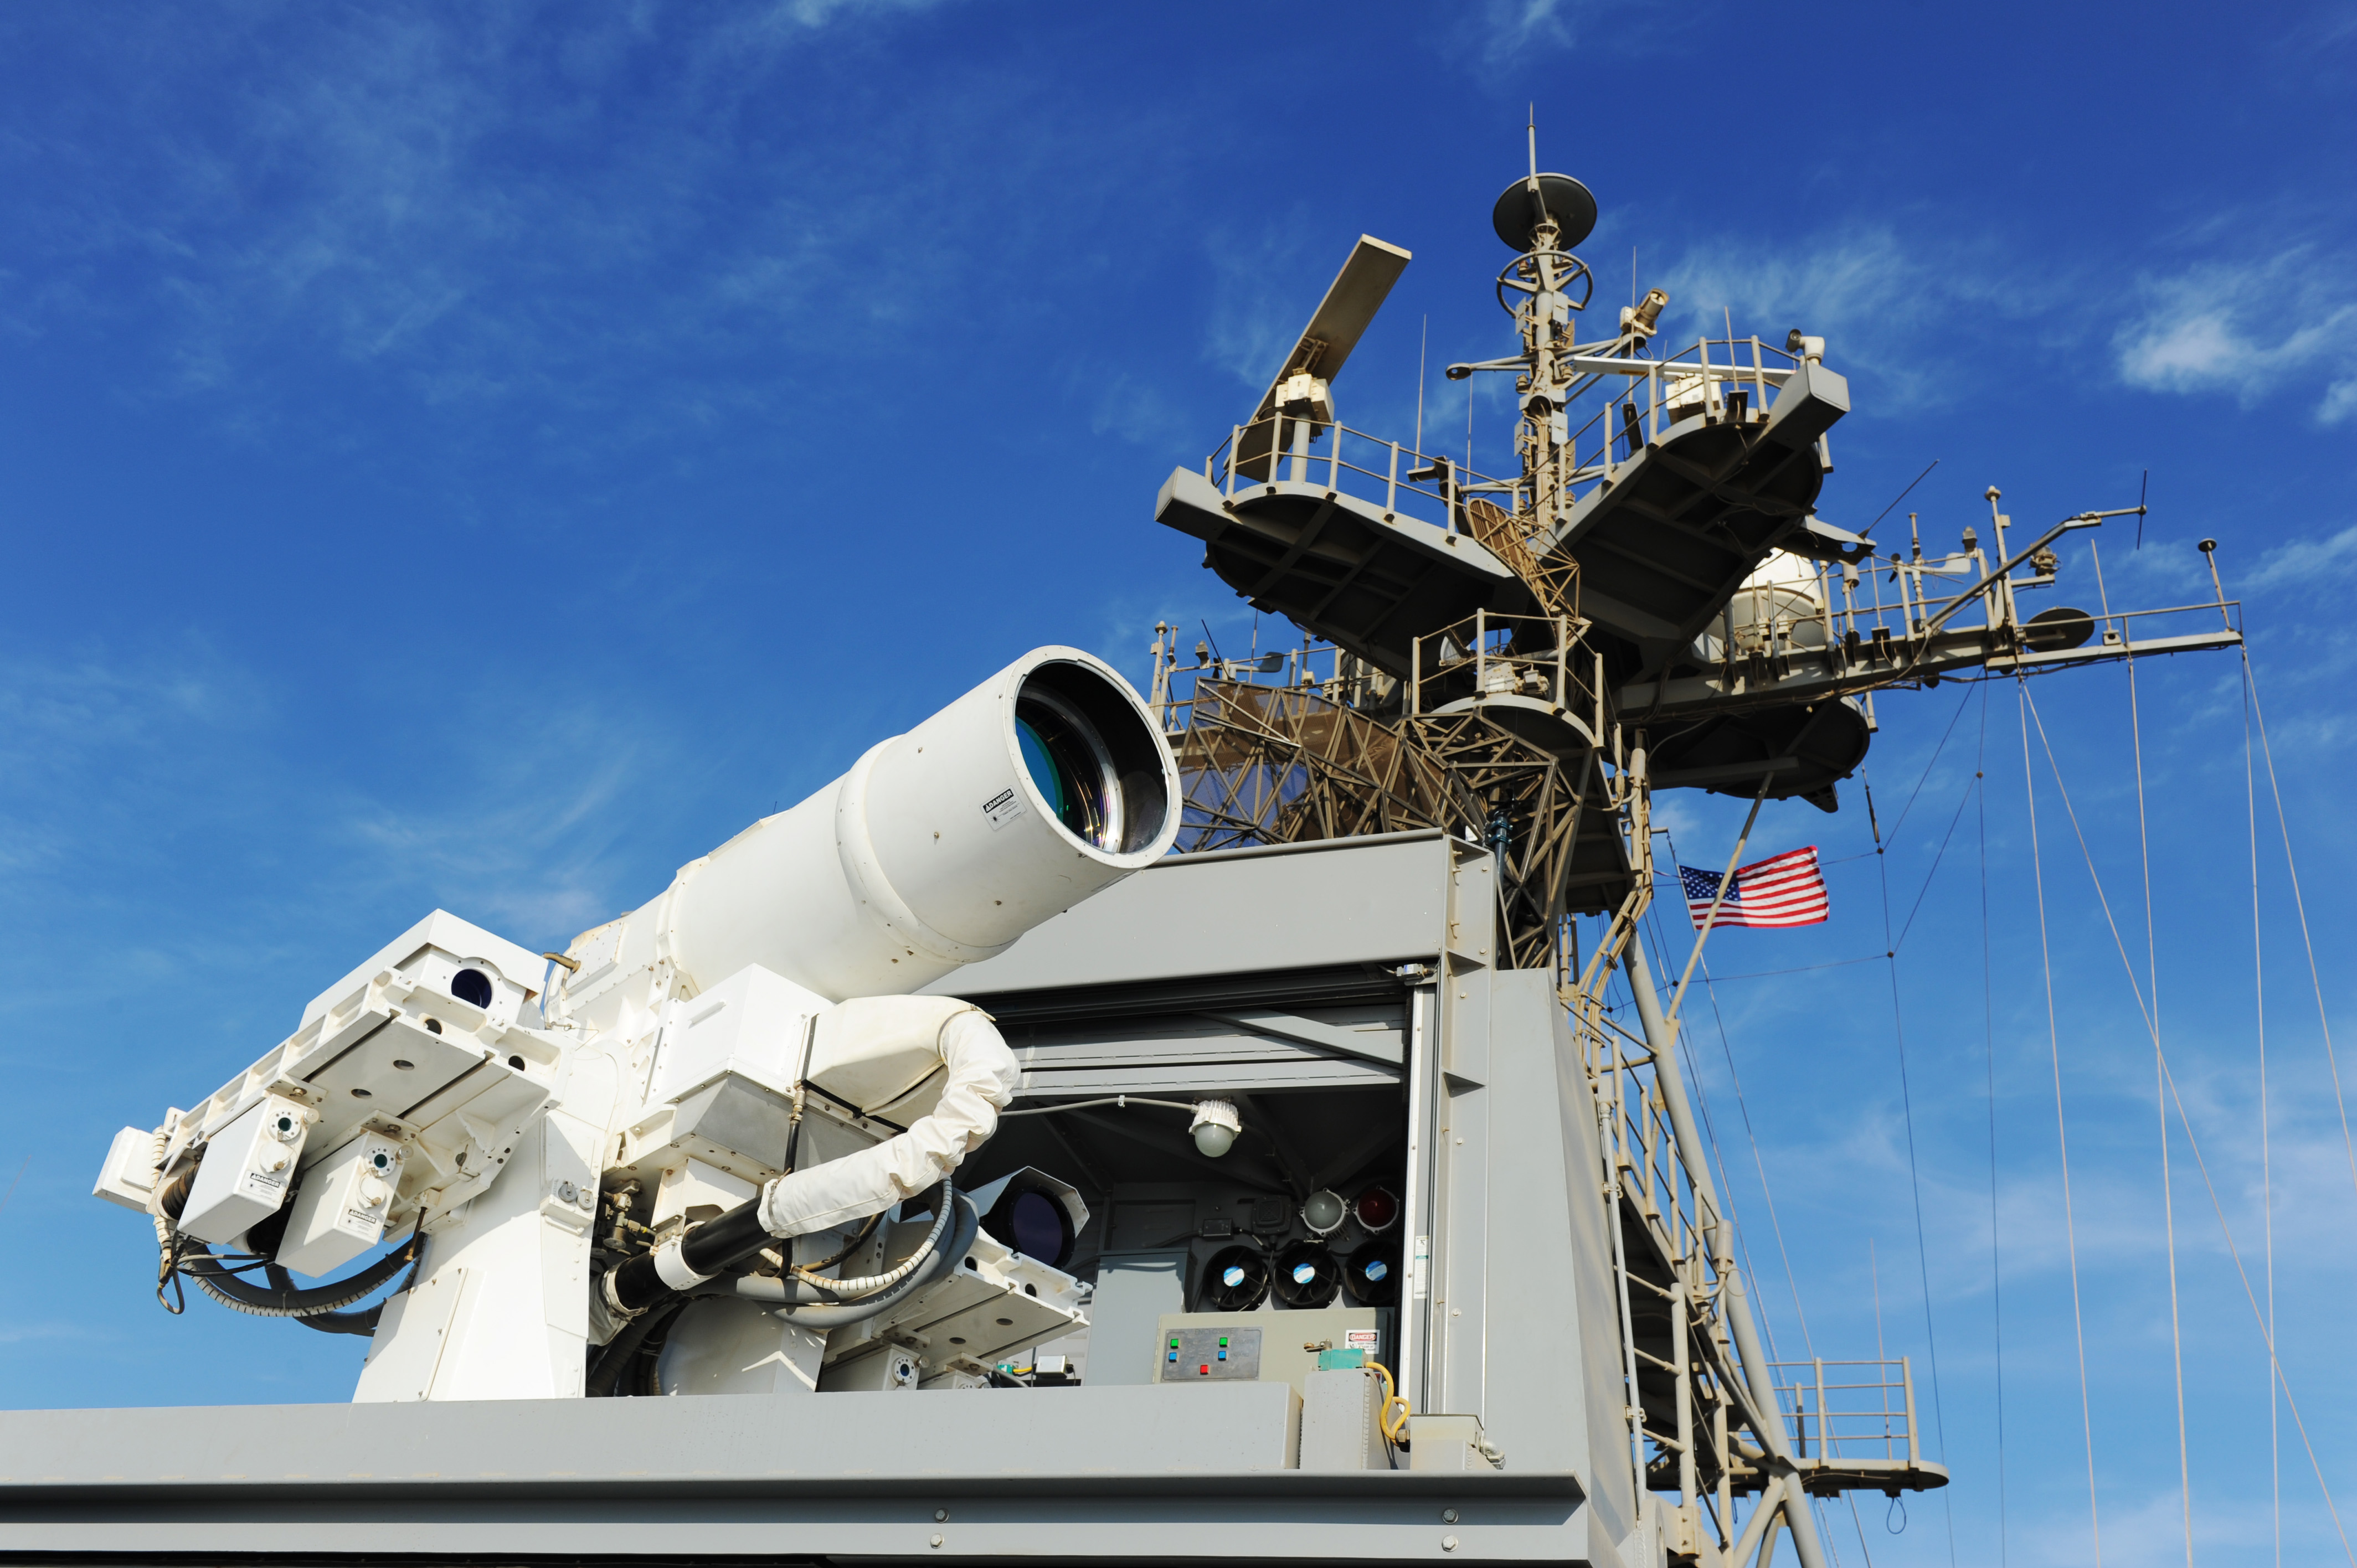 laser-weapon-system-on-uss-ponce.jpg